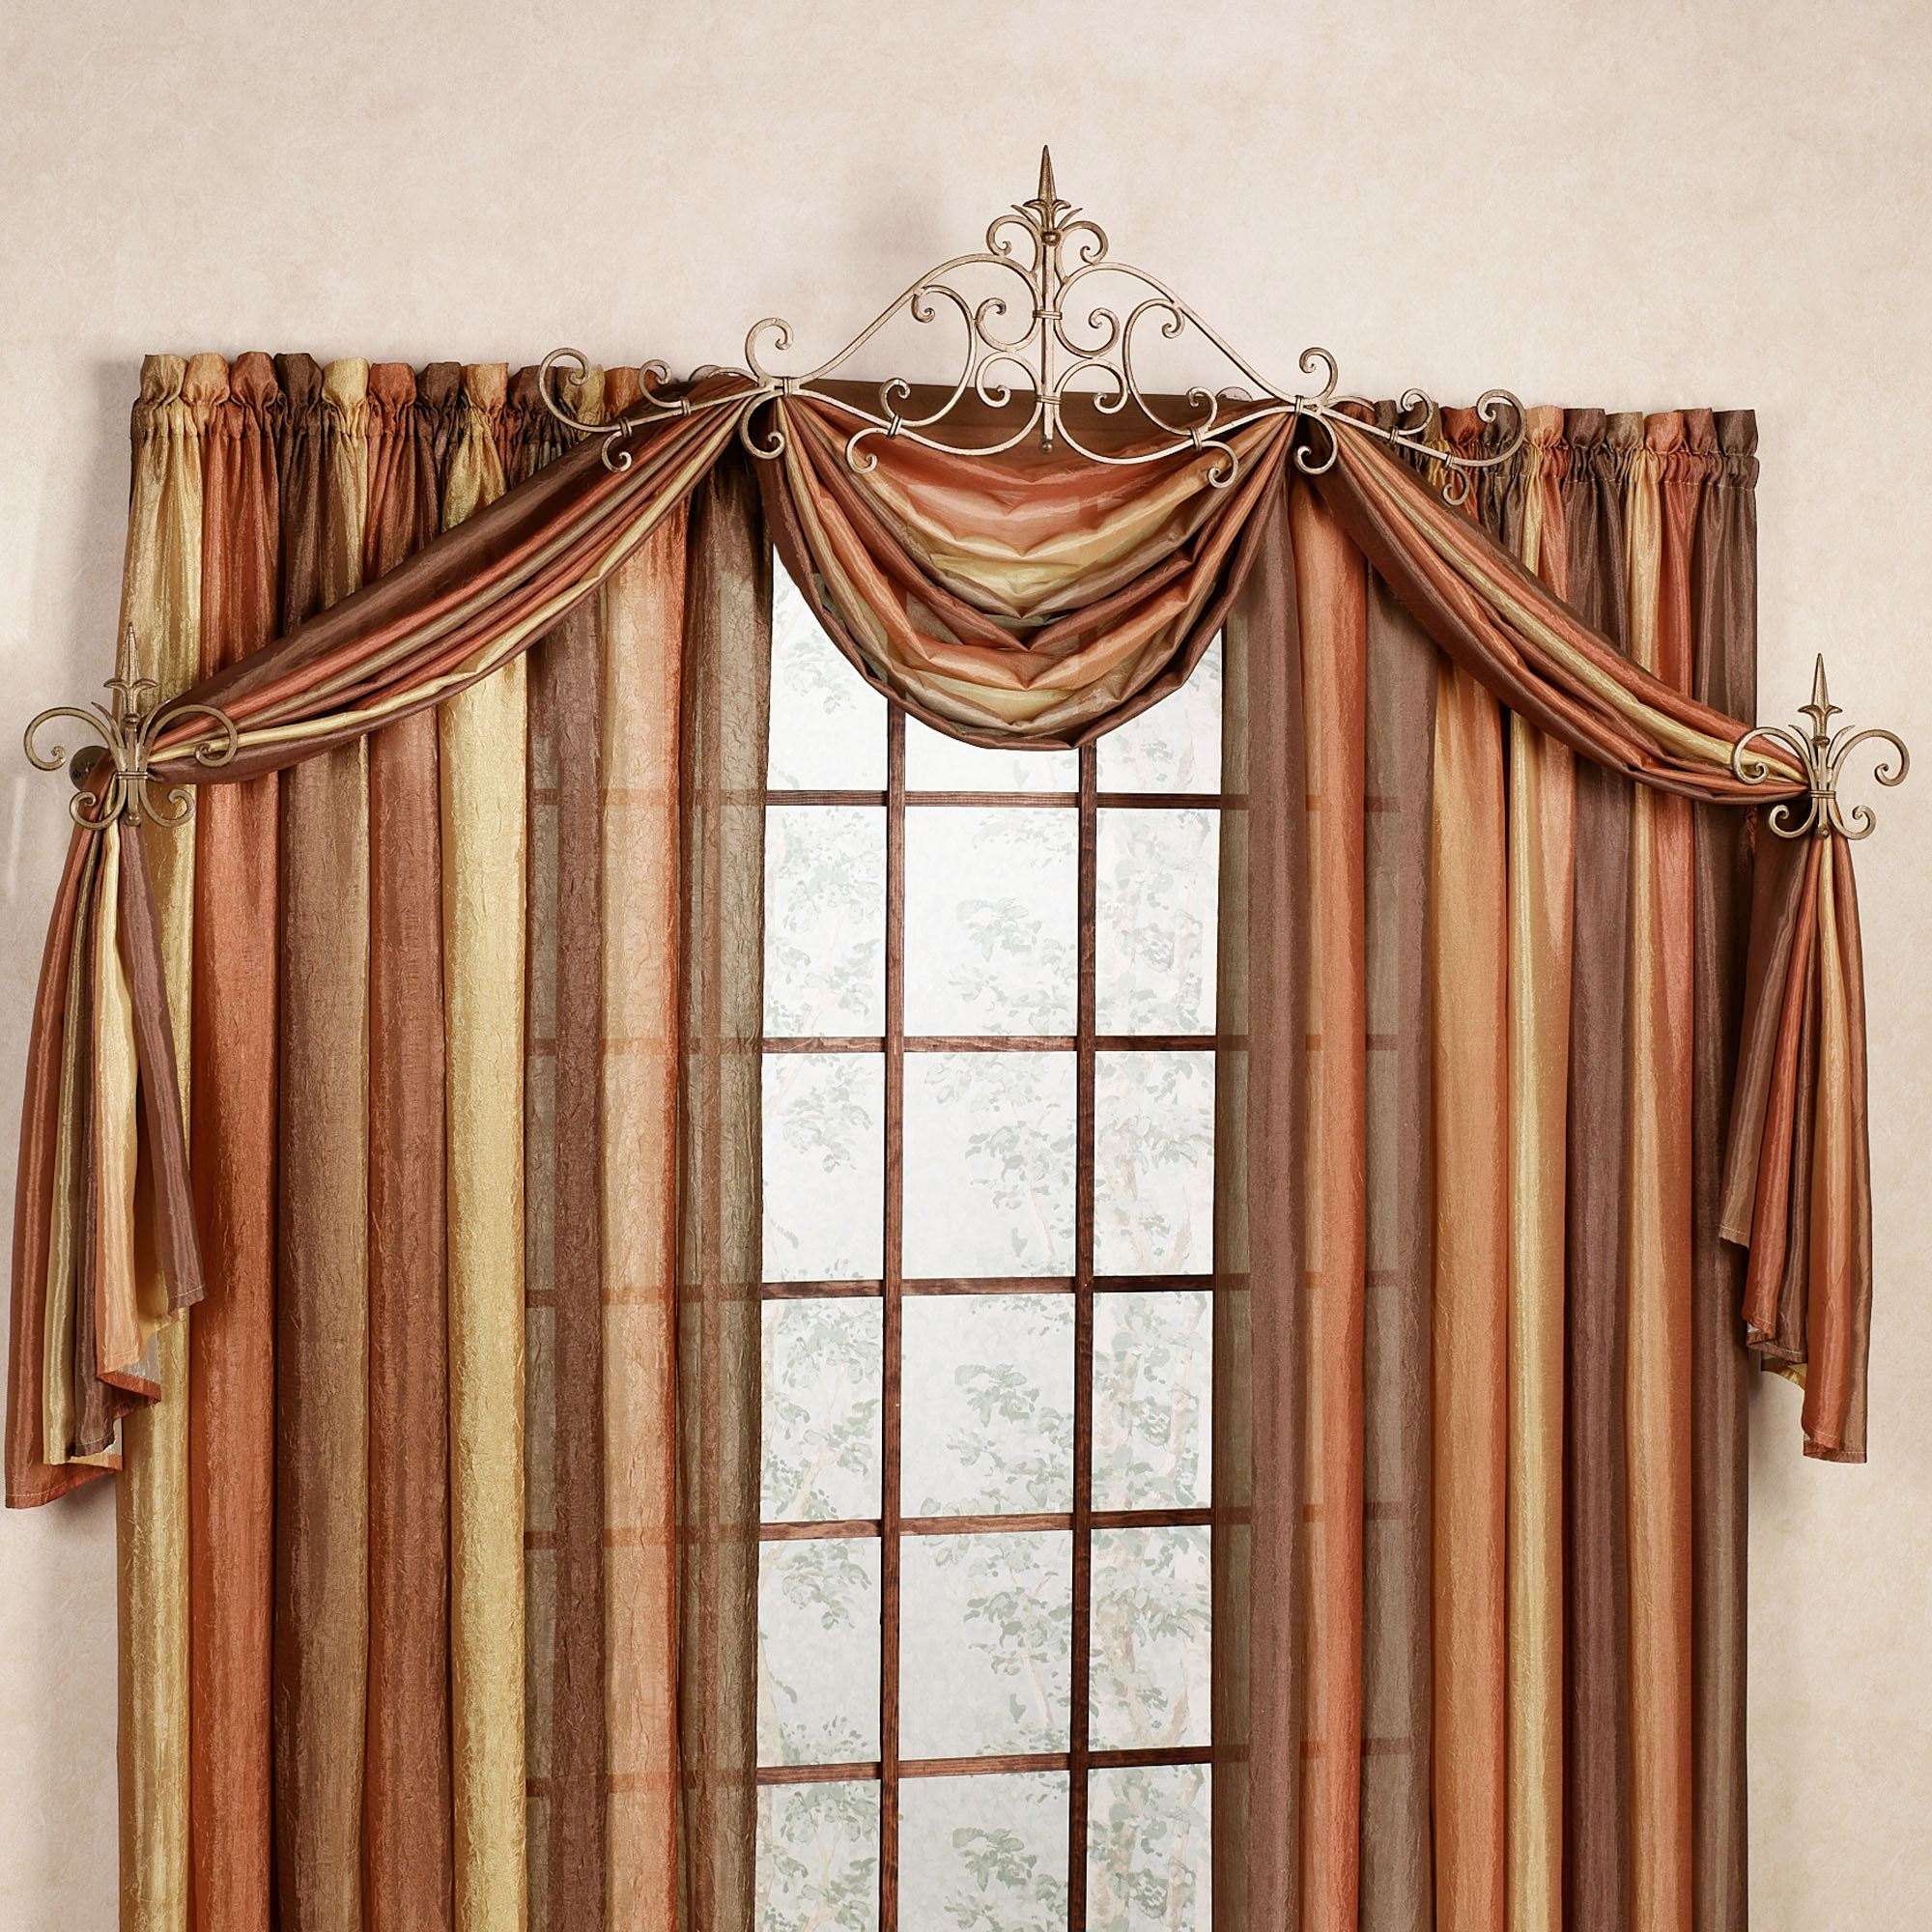 Sabelle Drapery Hardware Accent Set